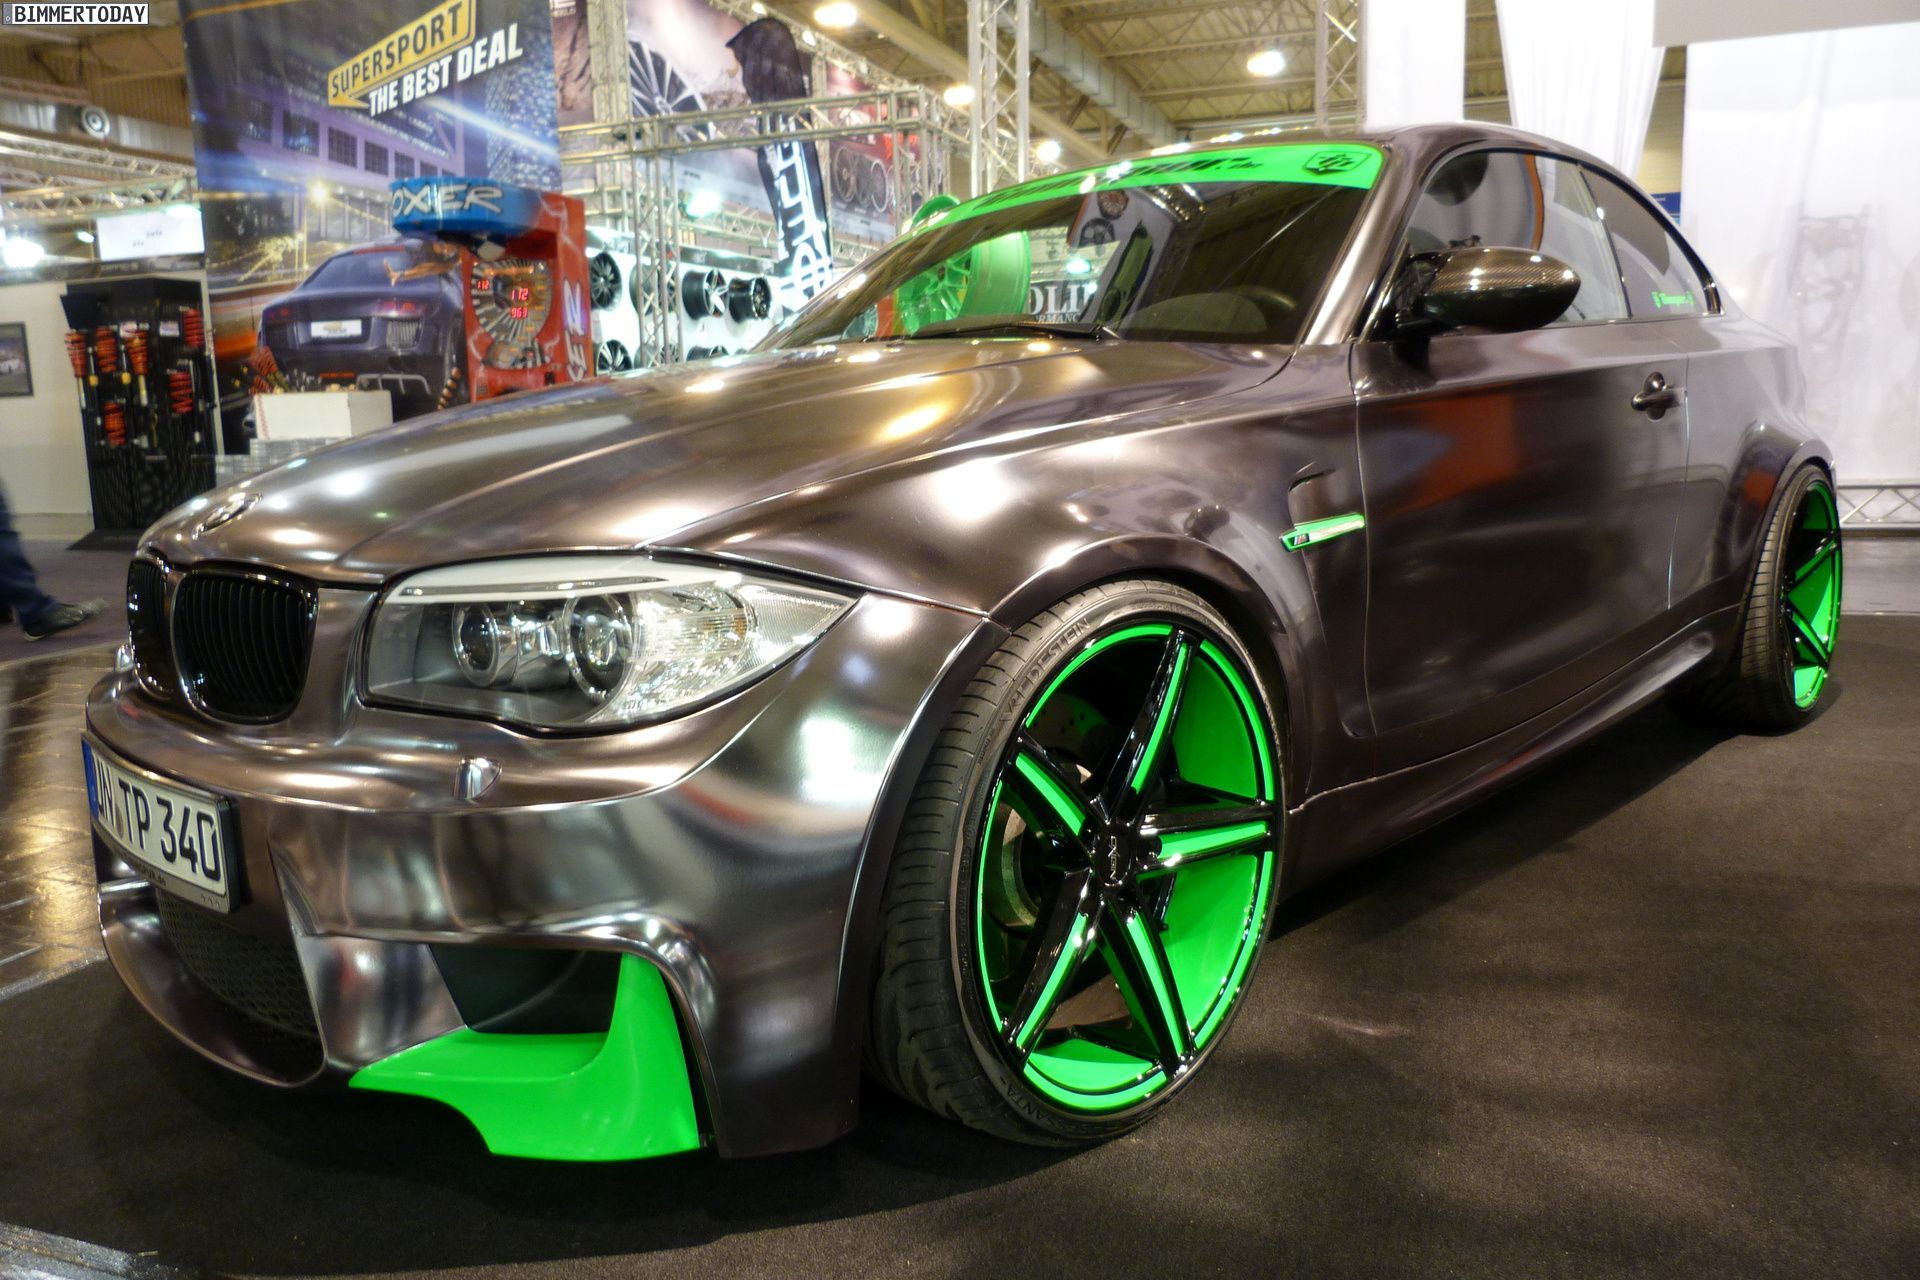 pin by rawmade on whip edm bmw bmw custom cars cars. Black Bedroom Furniture Sets. Home Design Ideas